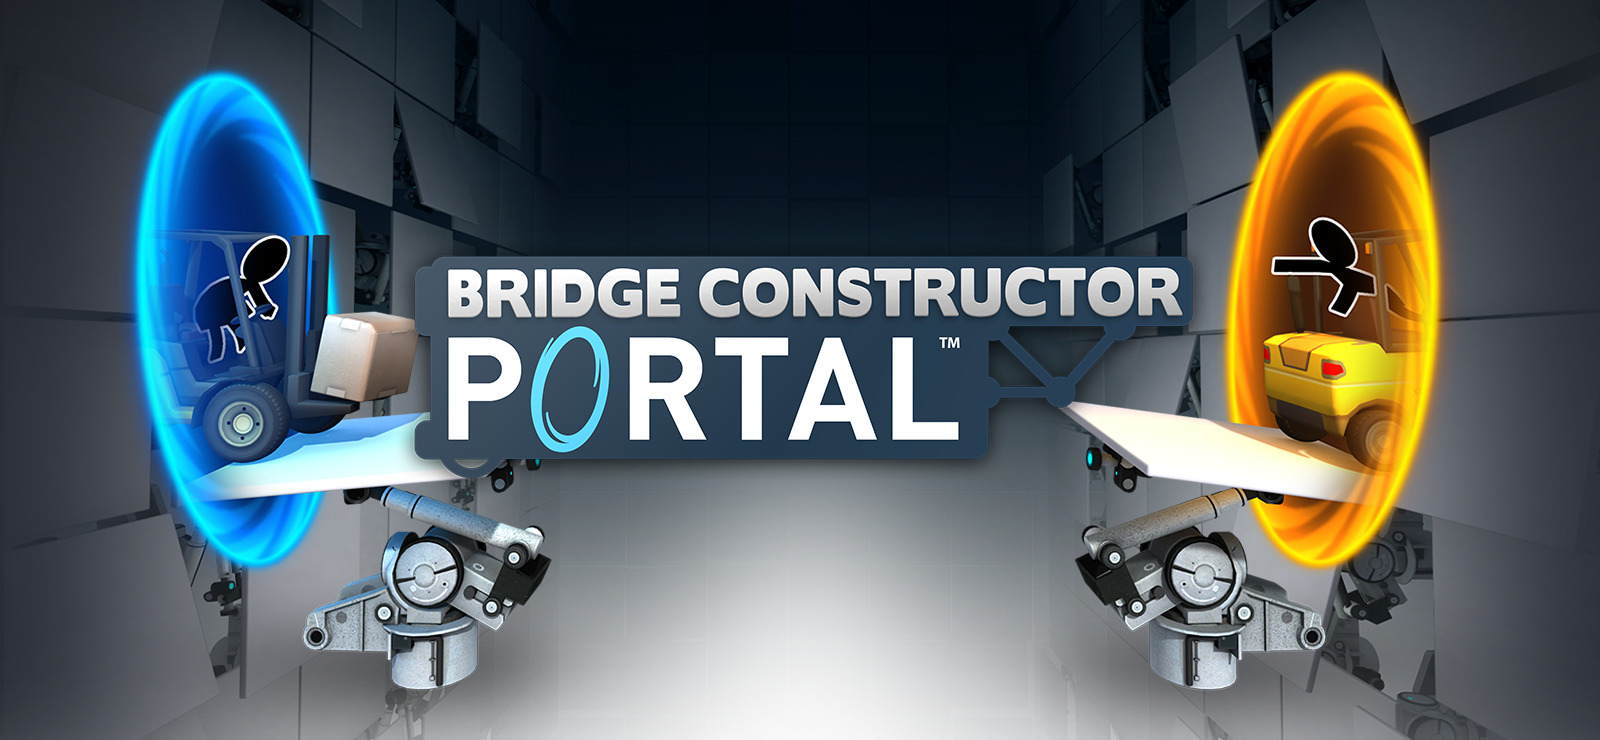 Bridge Constructor Portal Portal Proficiency-GOG